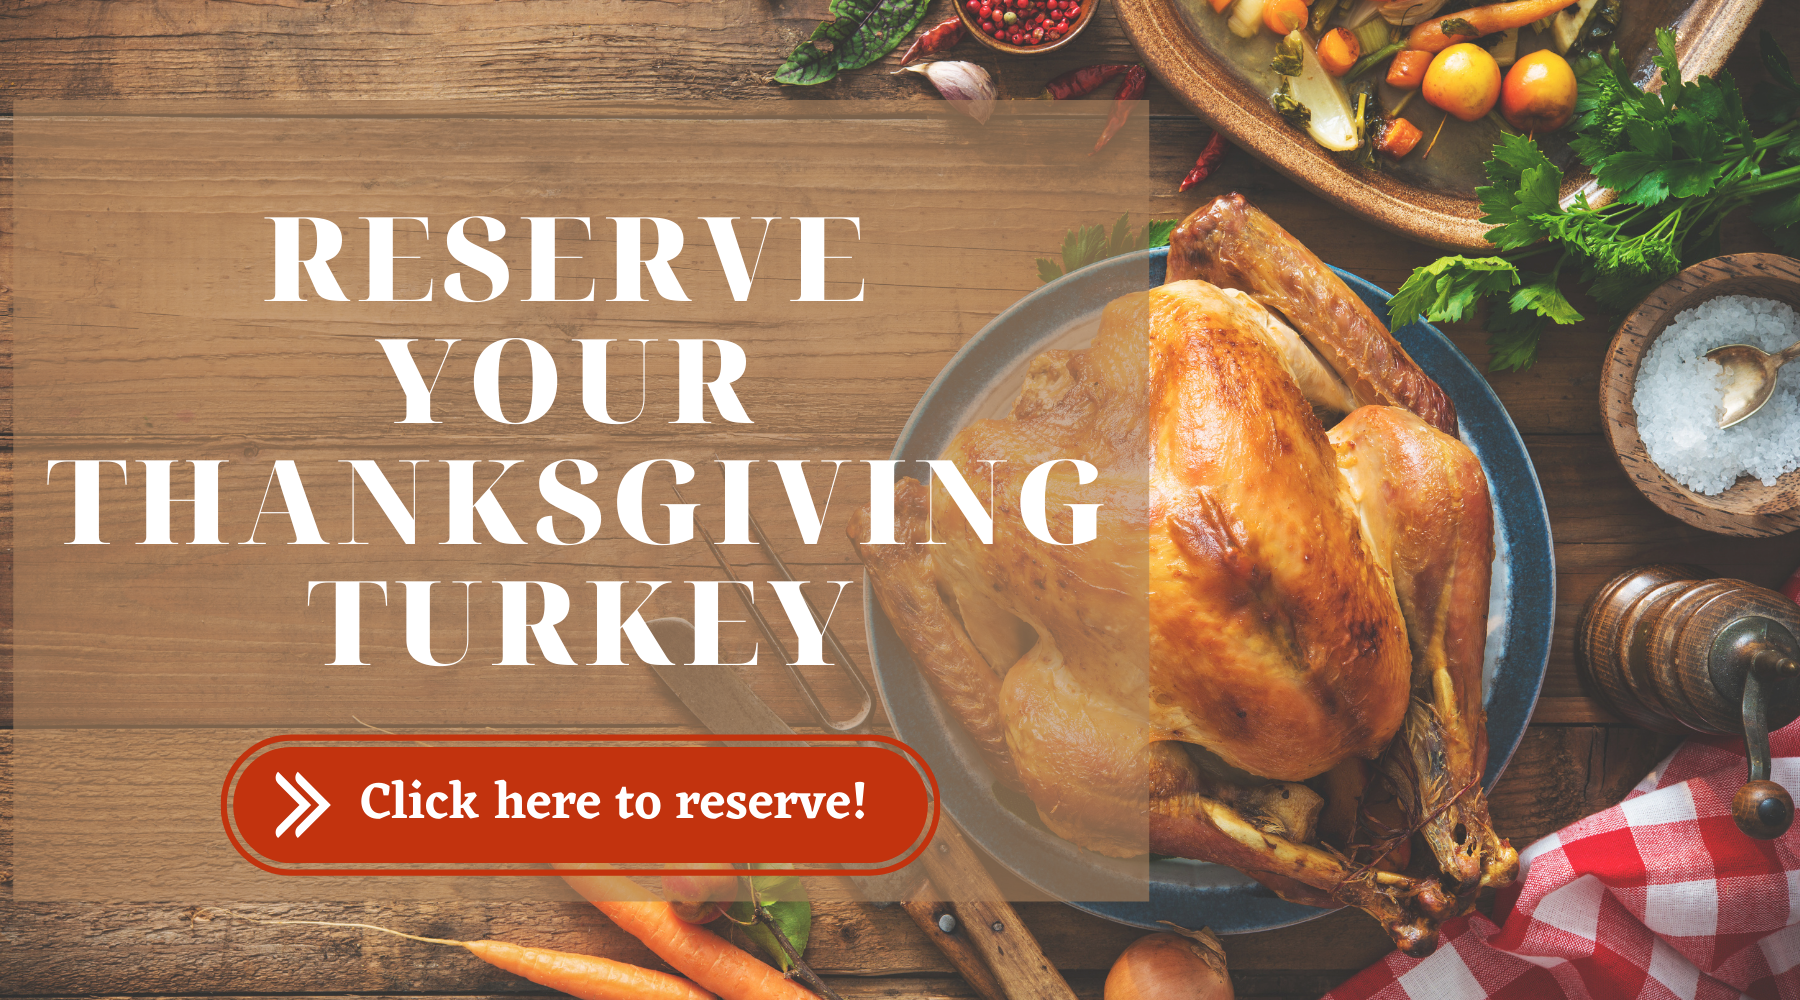 click here to reserve your thanksgiving turkey from hudson valley kinders farm